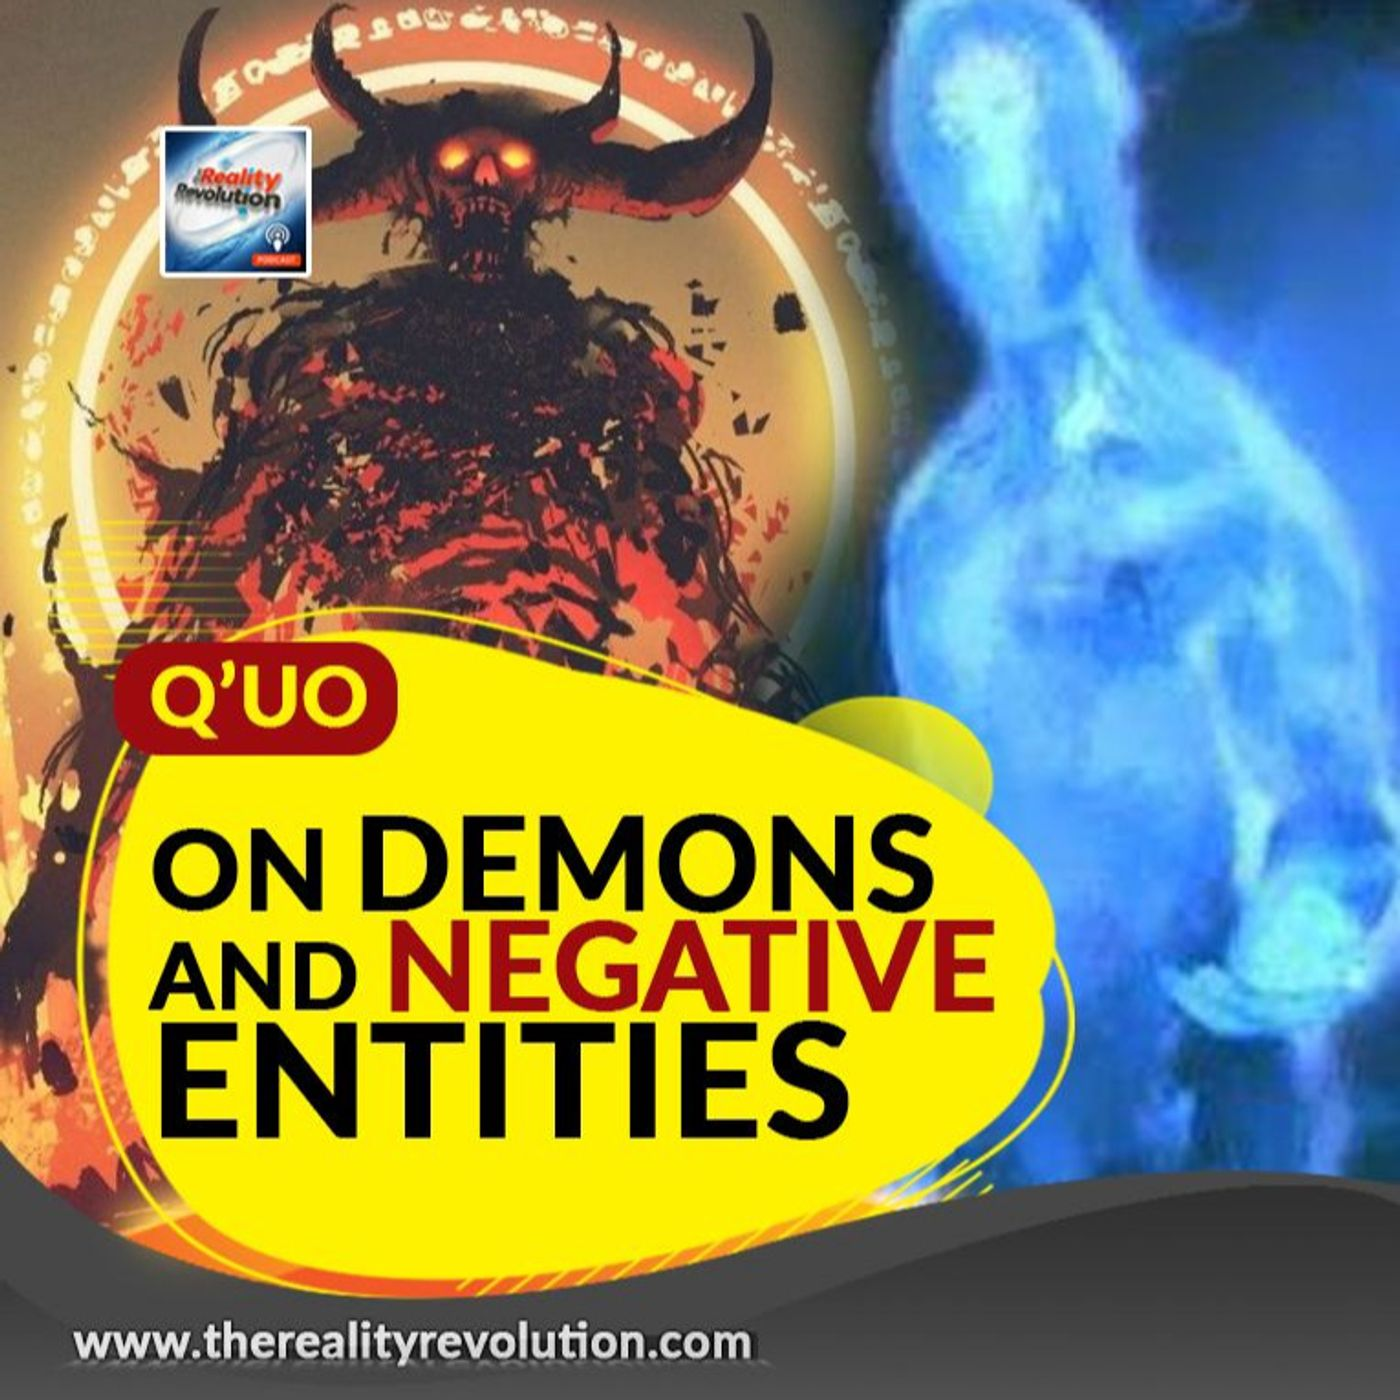 Q'uo On Demons And Negative Entities